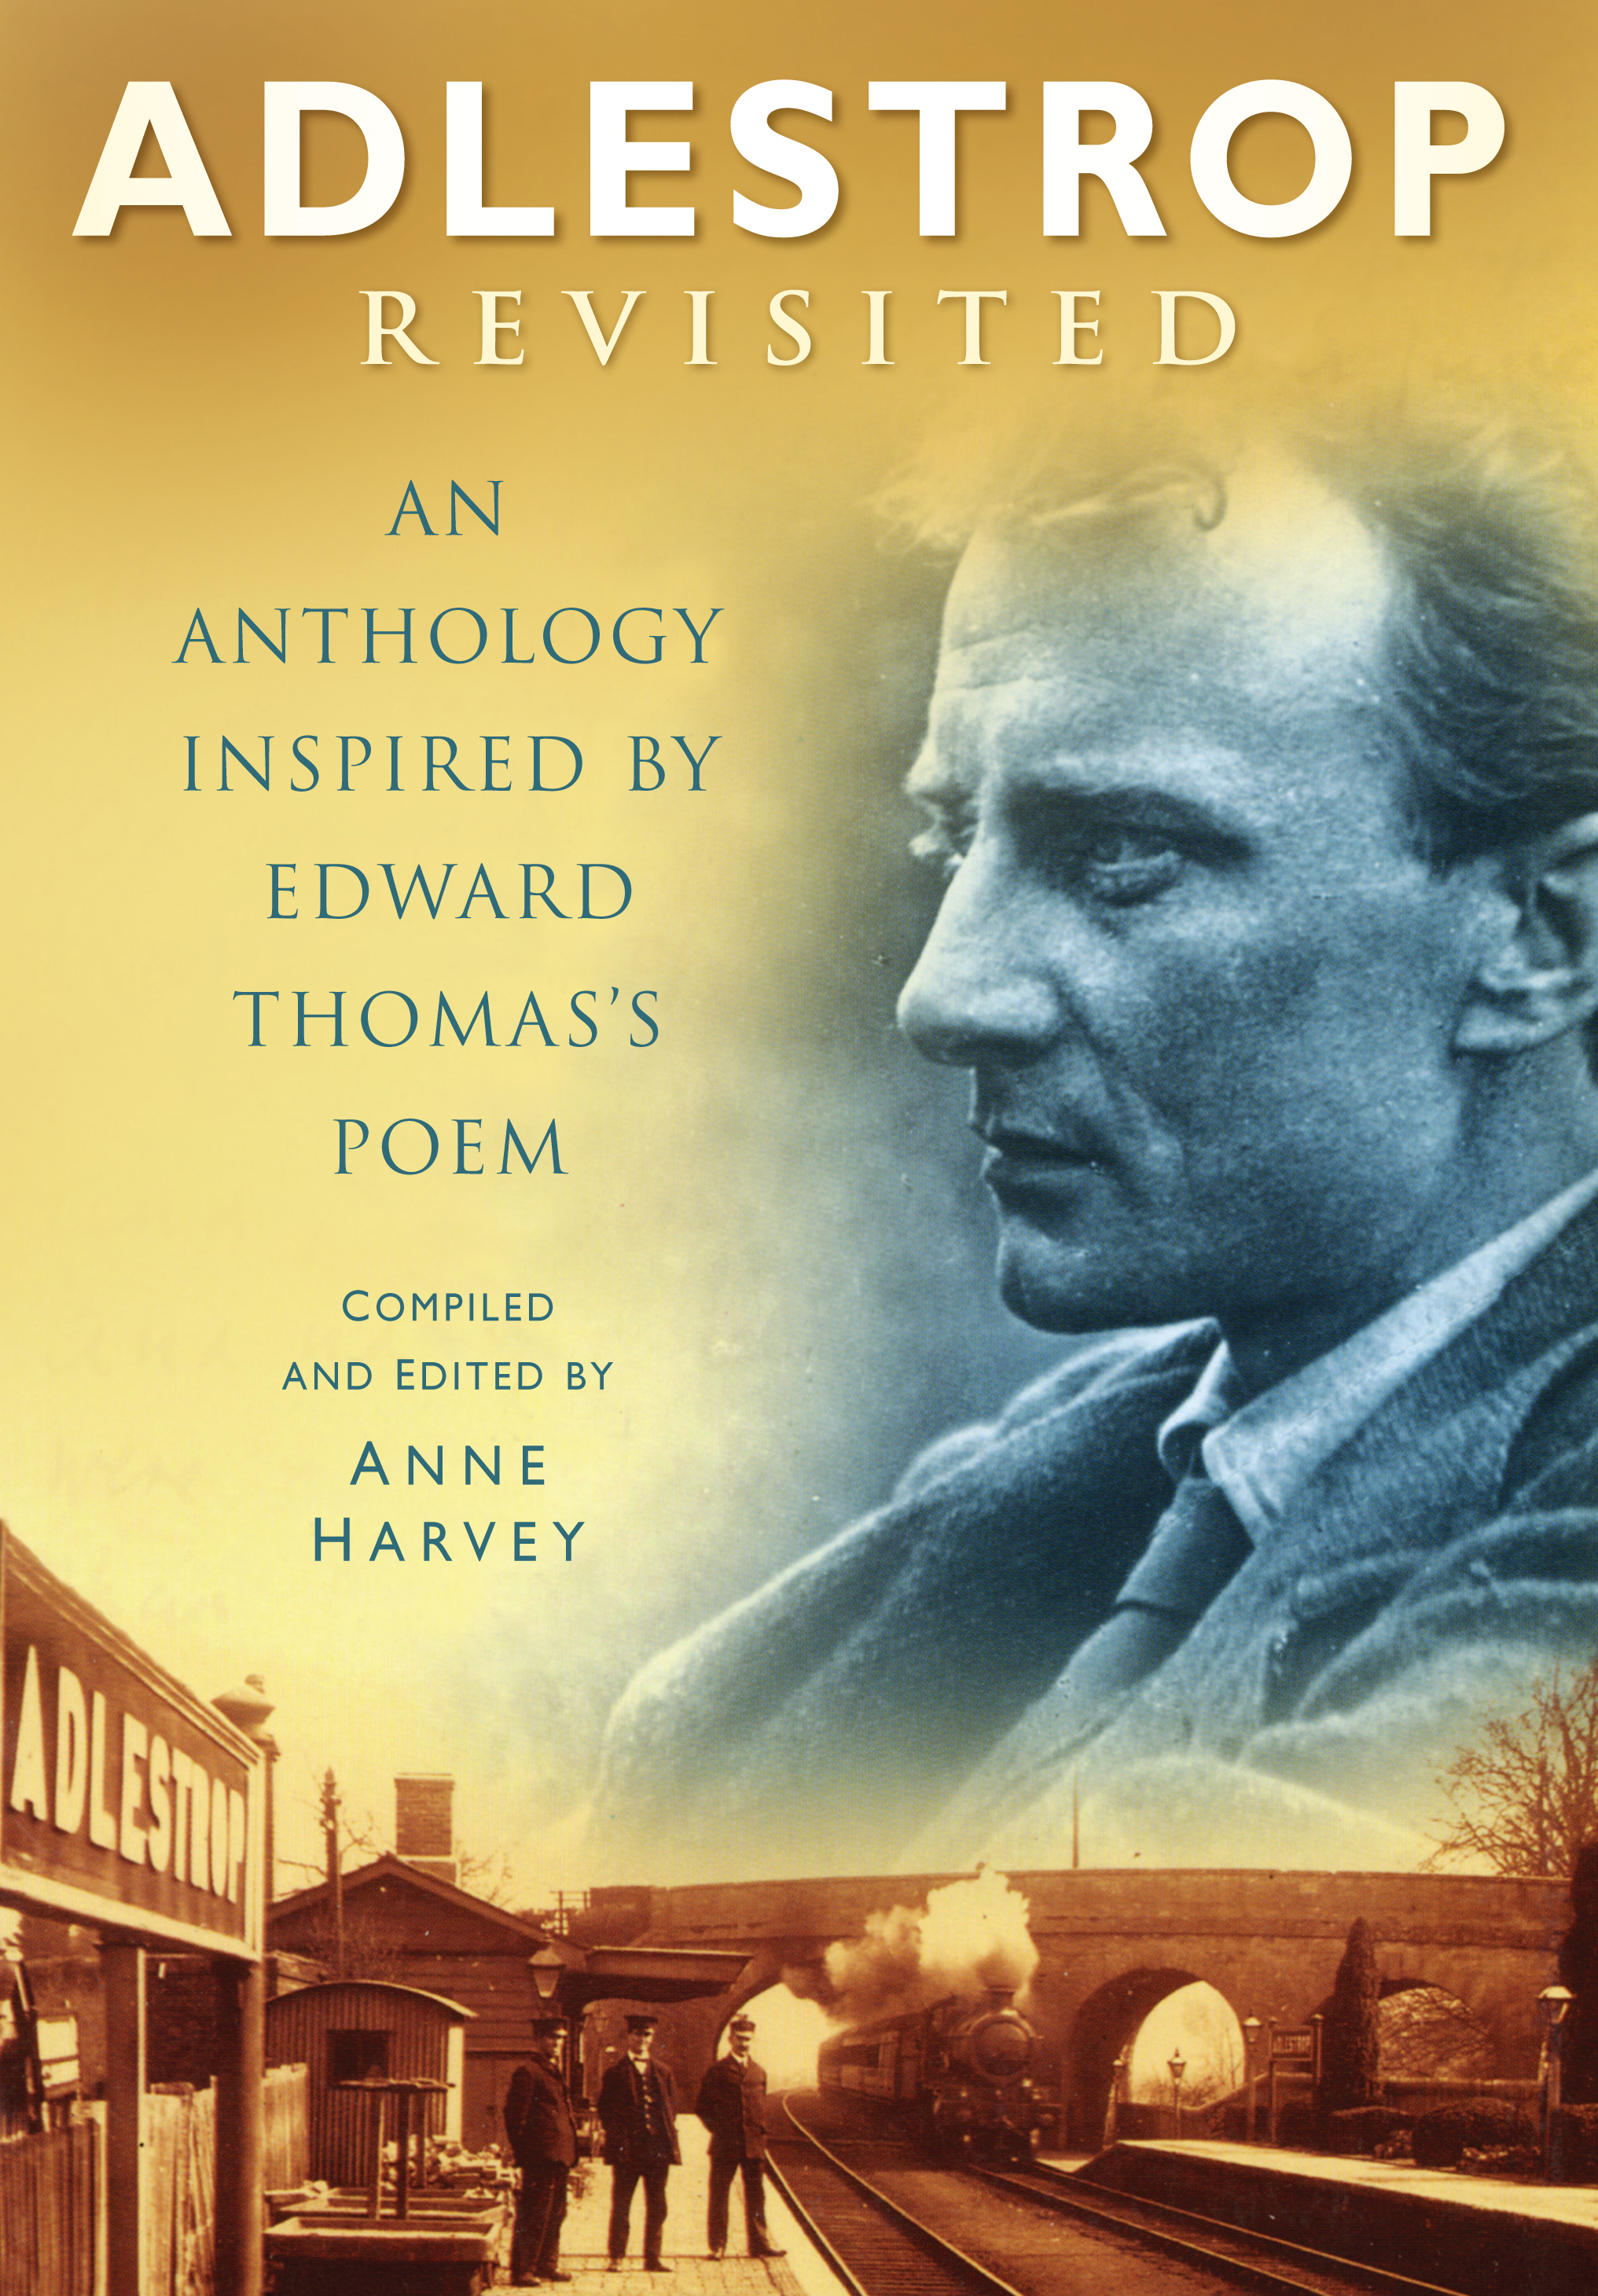 Adlestrop Revisited An Anthology Inspired by Edward Thomas's Poem